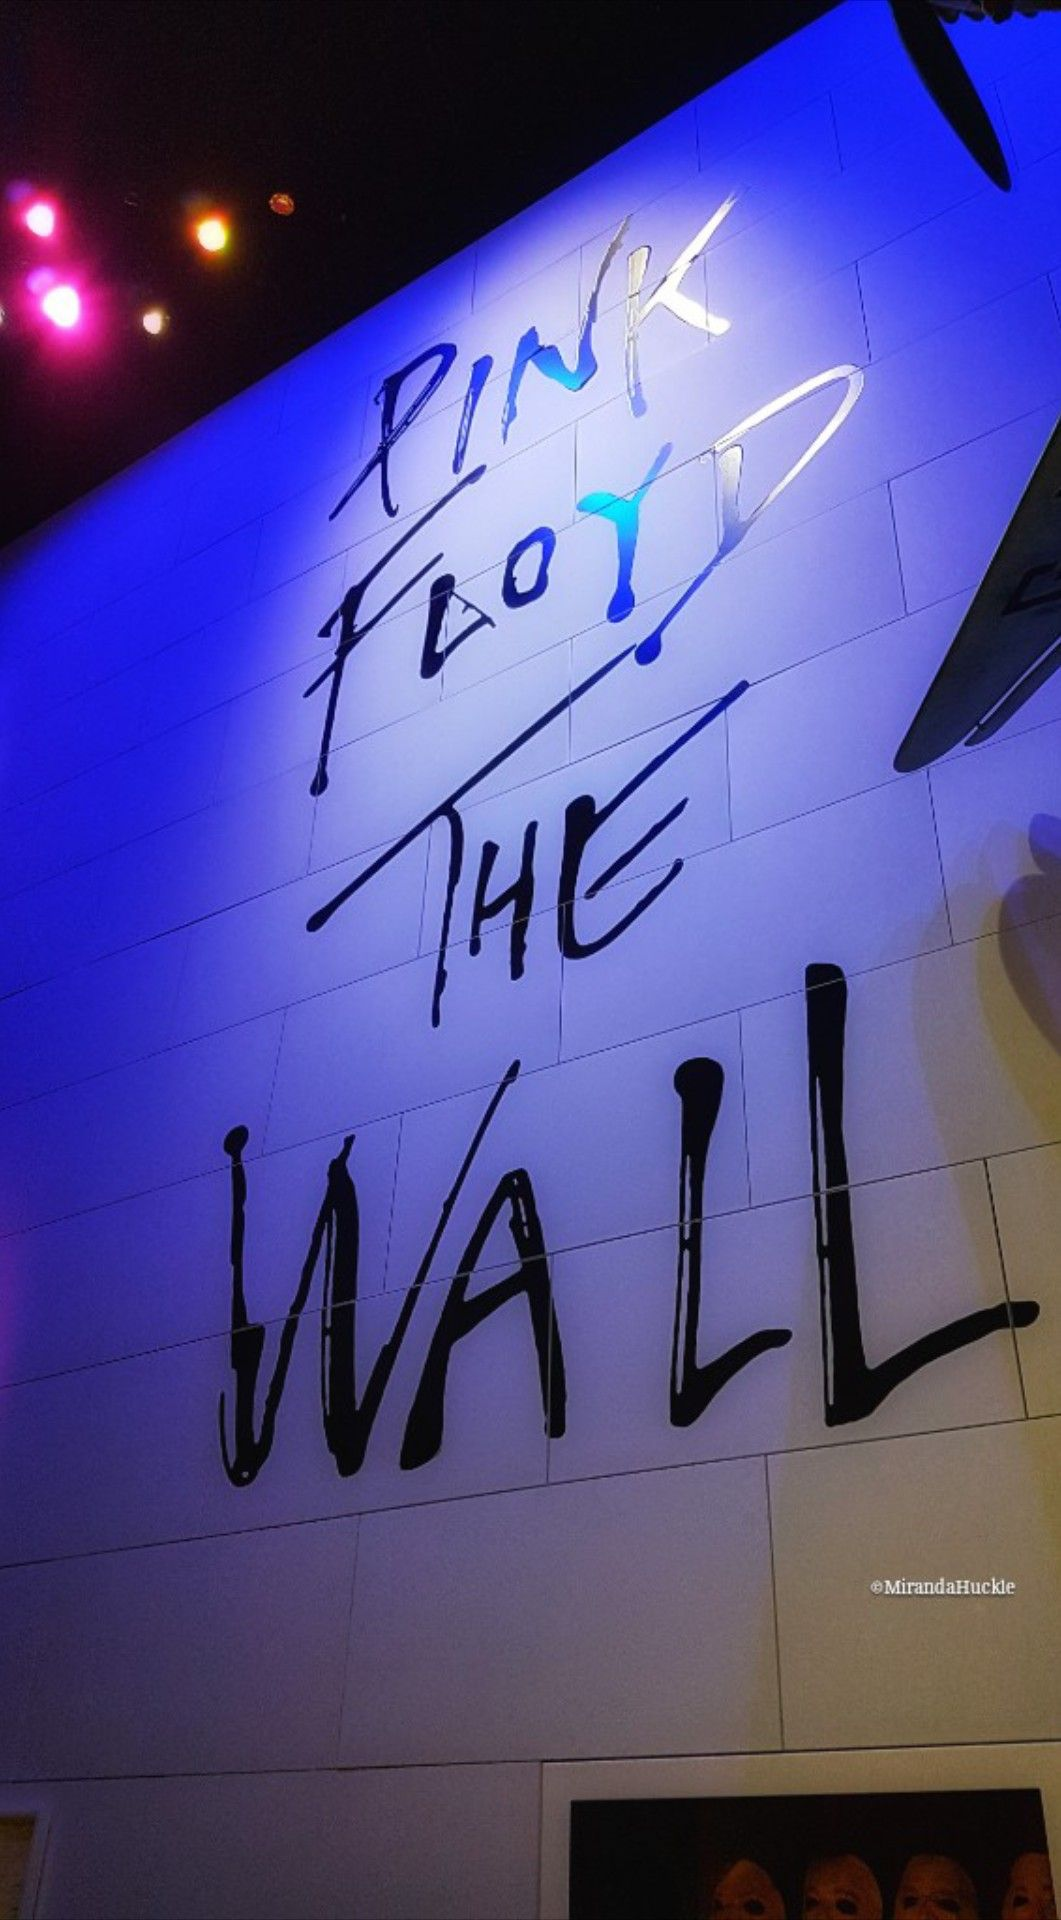 One of the wall displays from the pink floyd exhibition